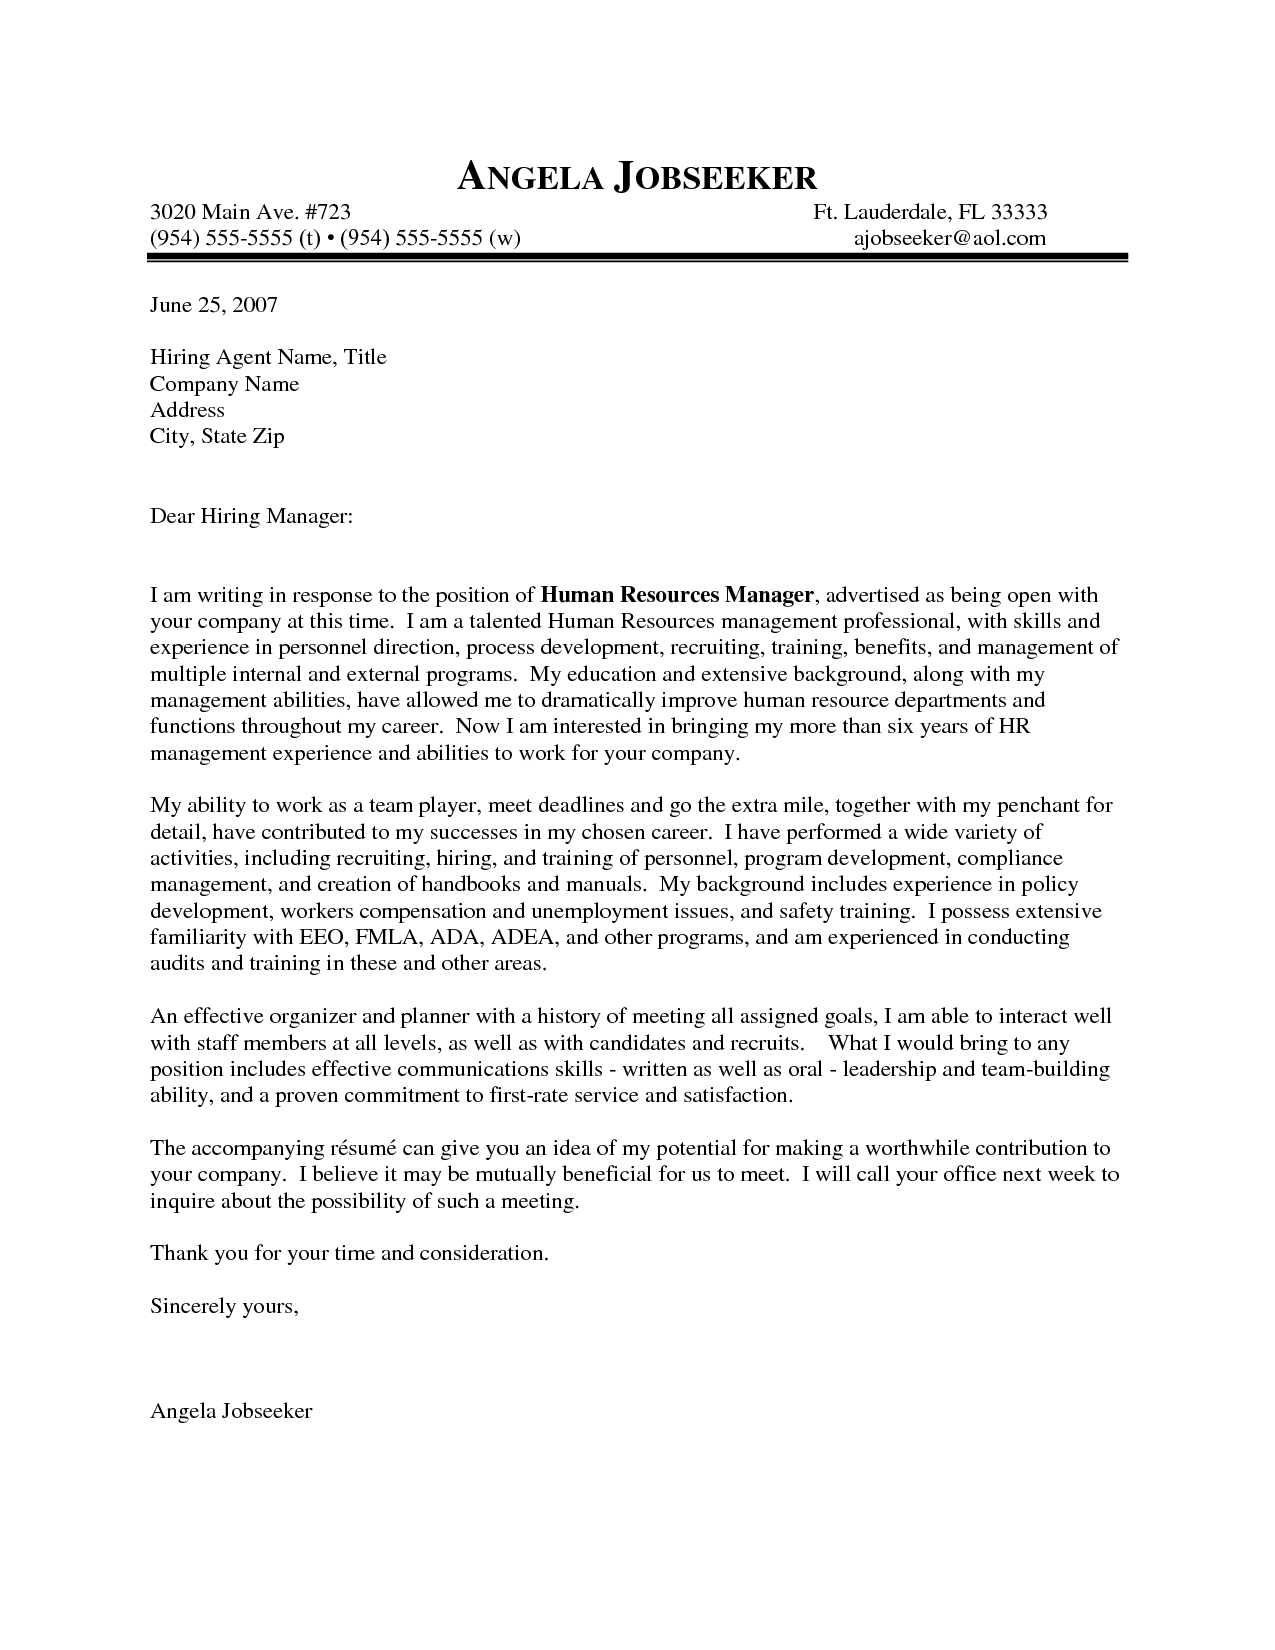 Outstanding cover letter examples hr manager cover letter example outstanding cover letter examples hr manager cover letter example altavistaventures Choice Image